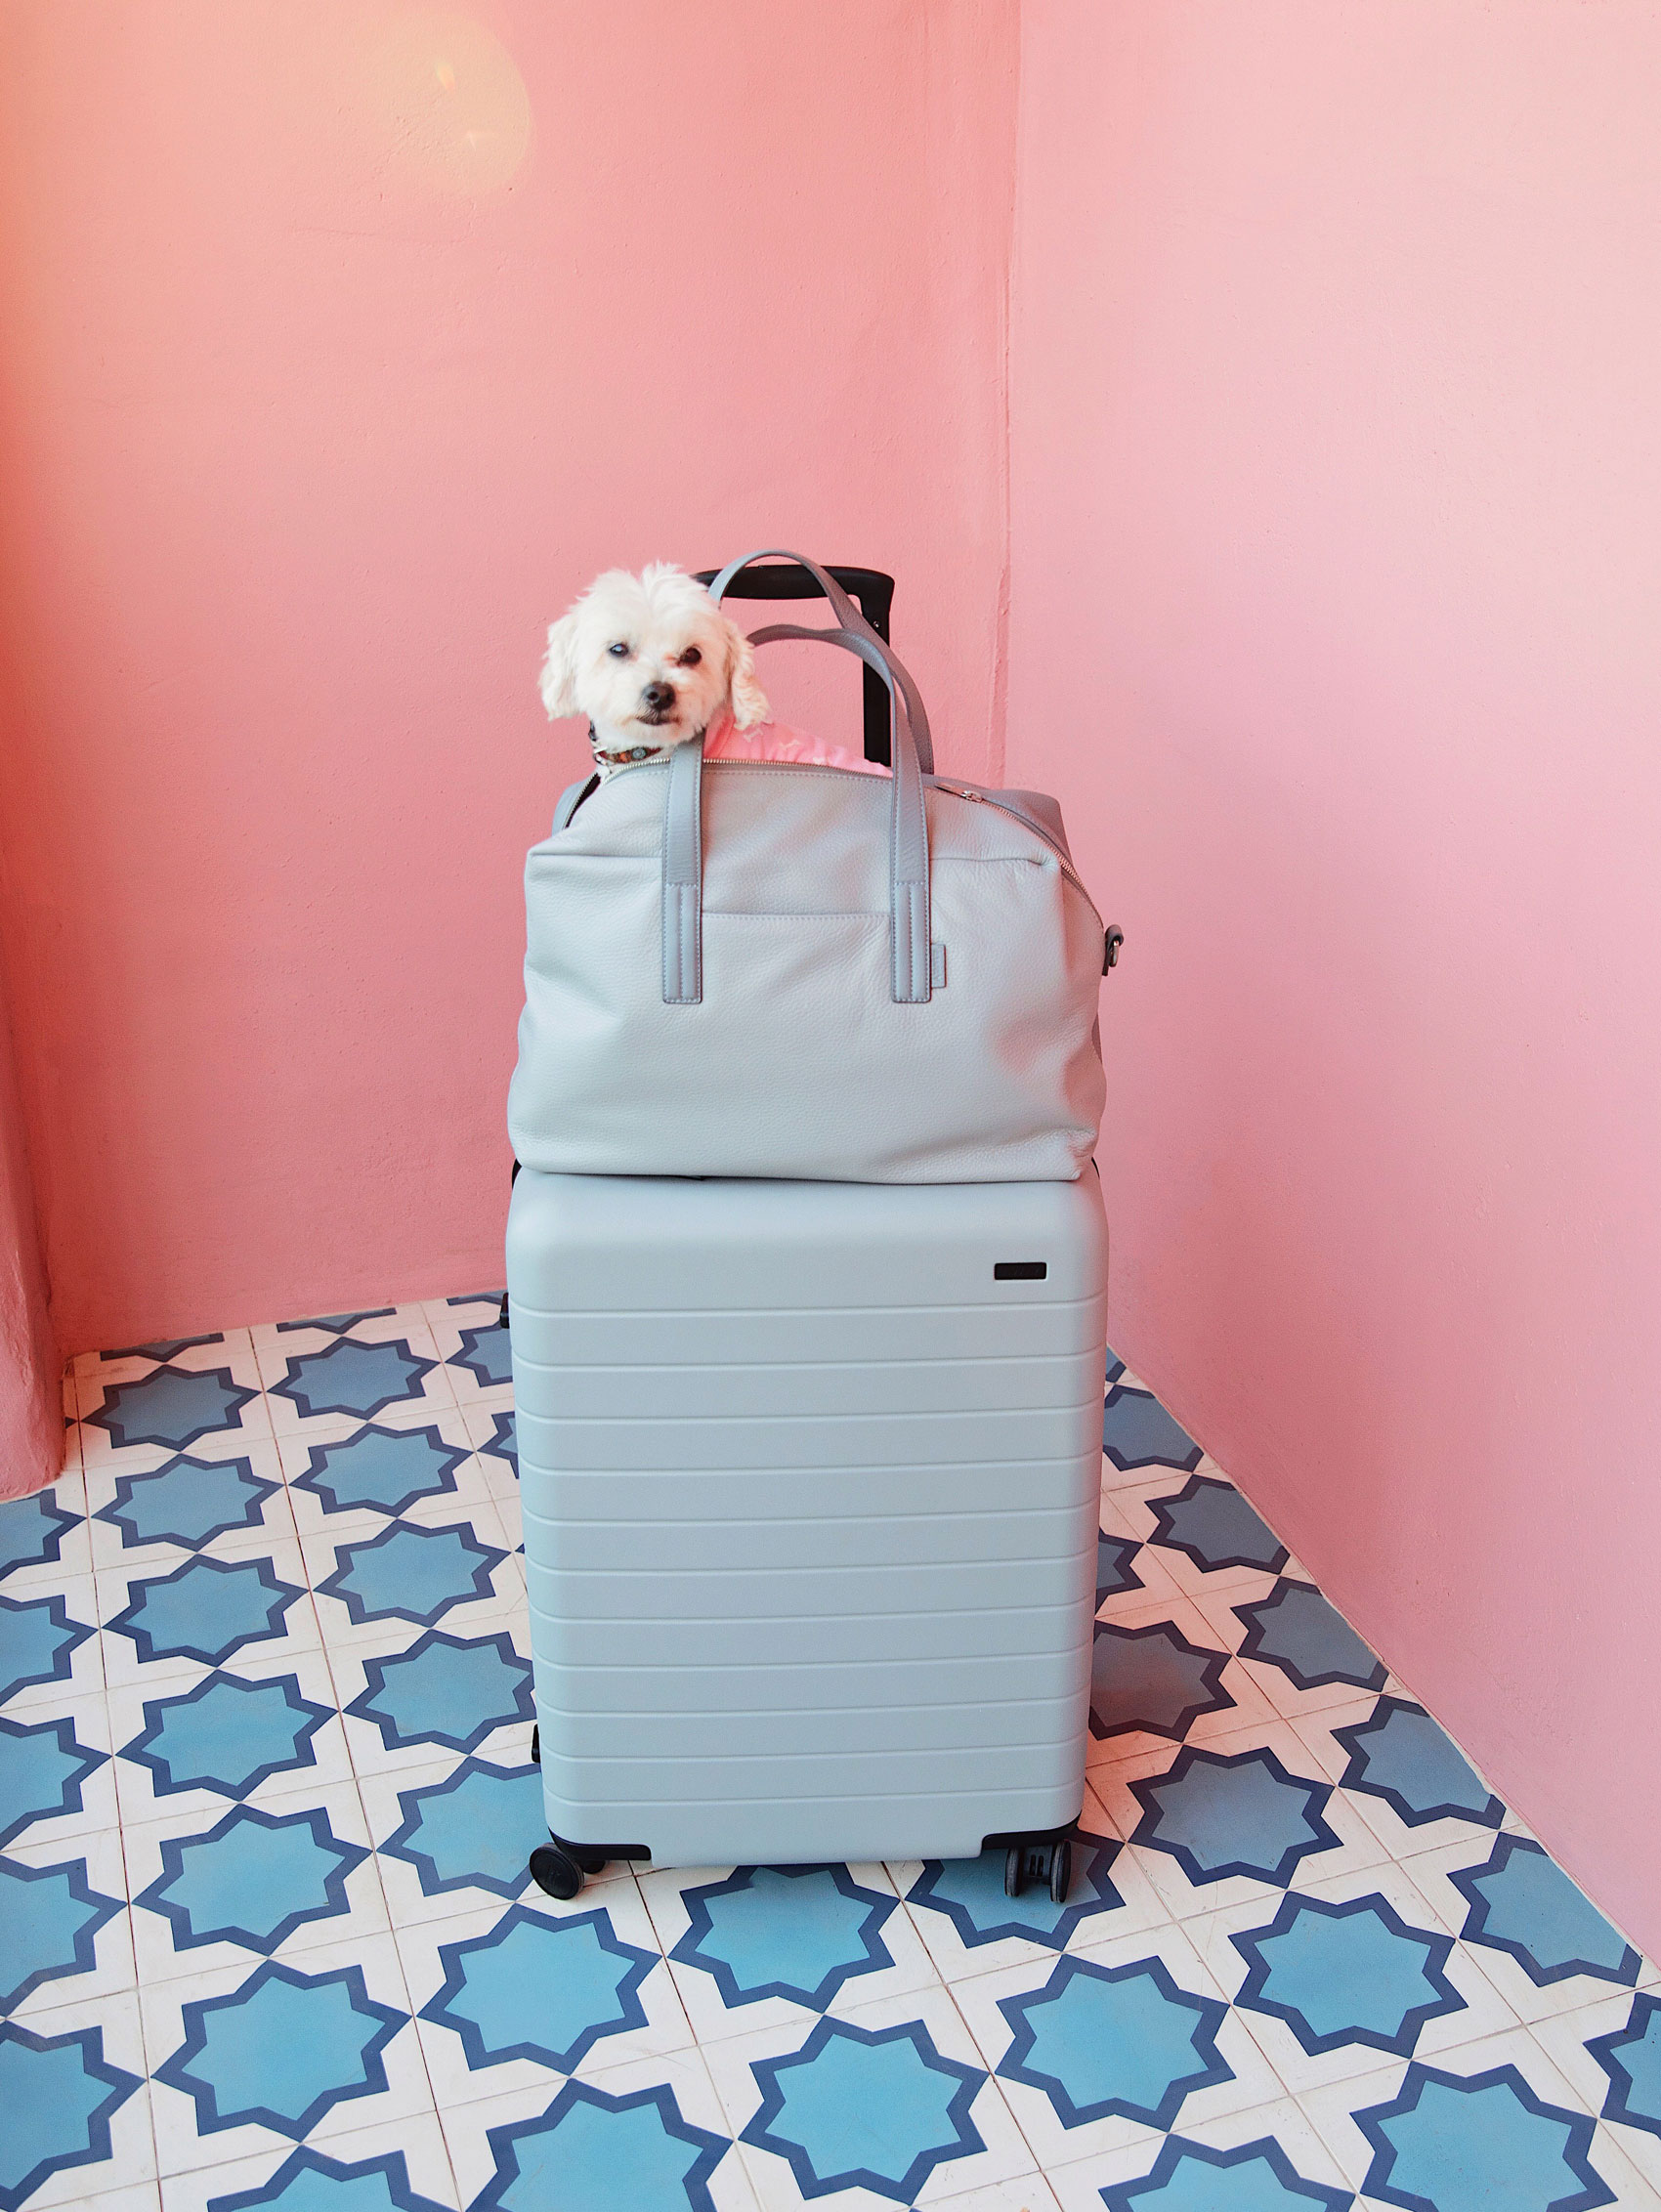 Doggy in a travel bag. Kimberly Genevieve lifestyle photographer Los Angeles